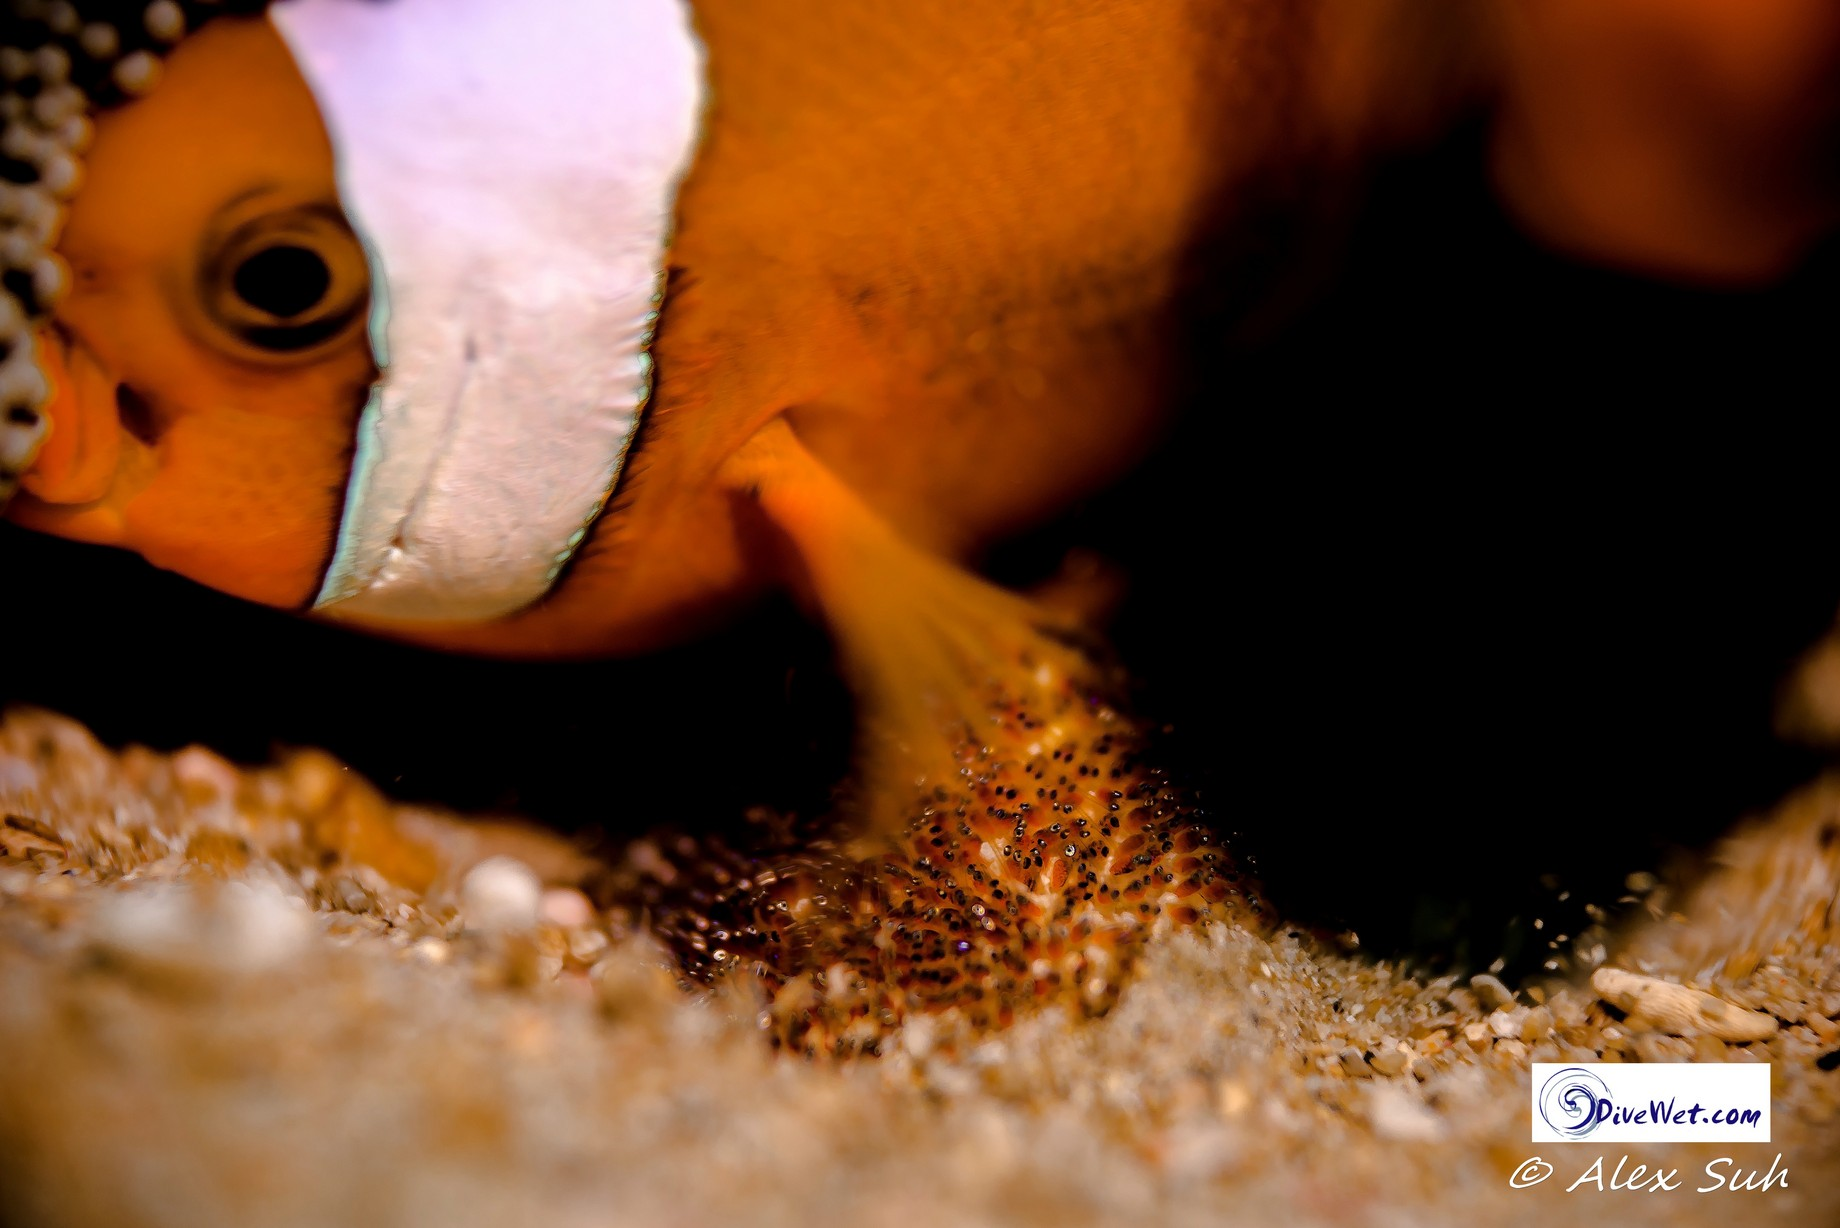 Skunk Clown Fish Fanning Eggs